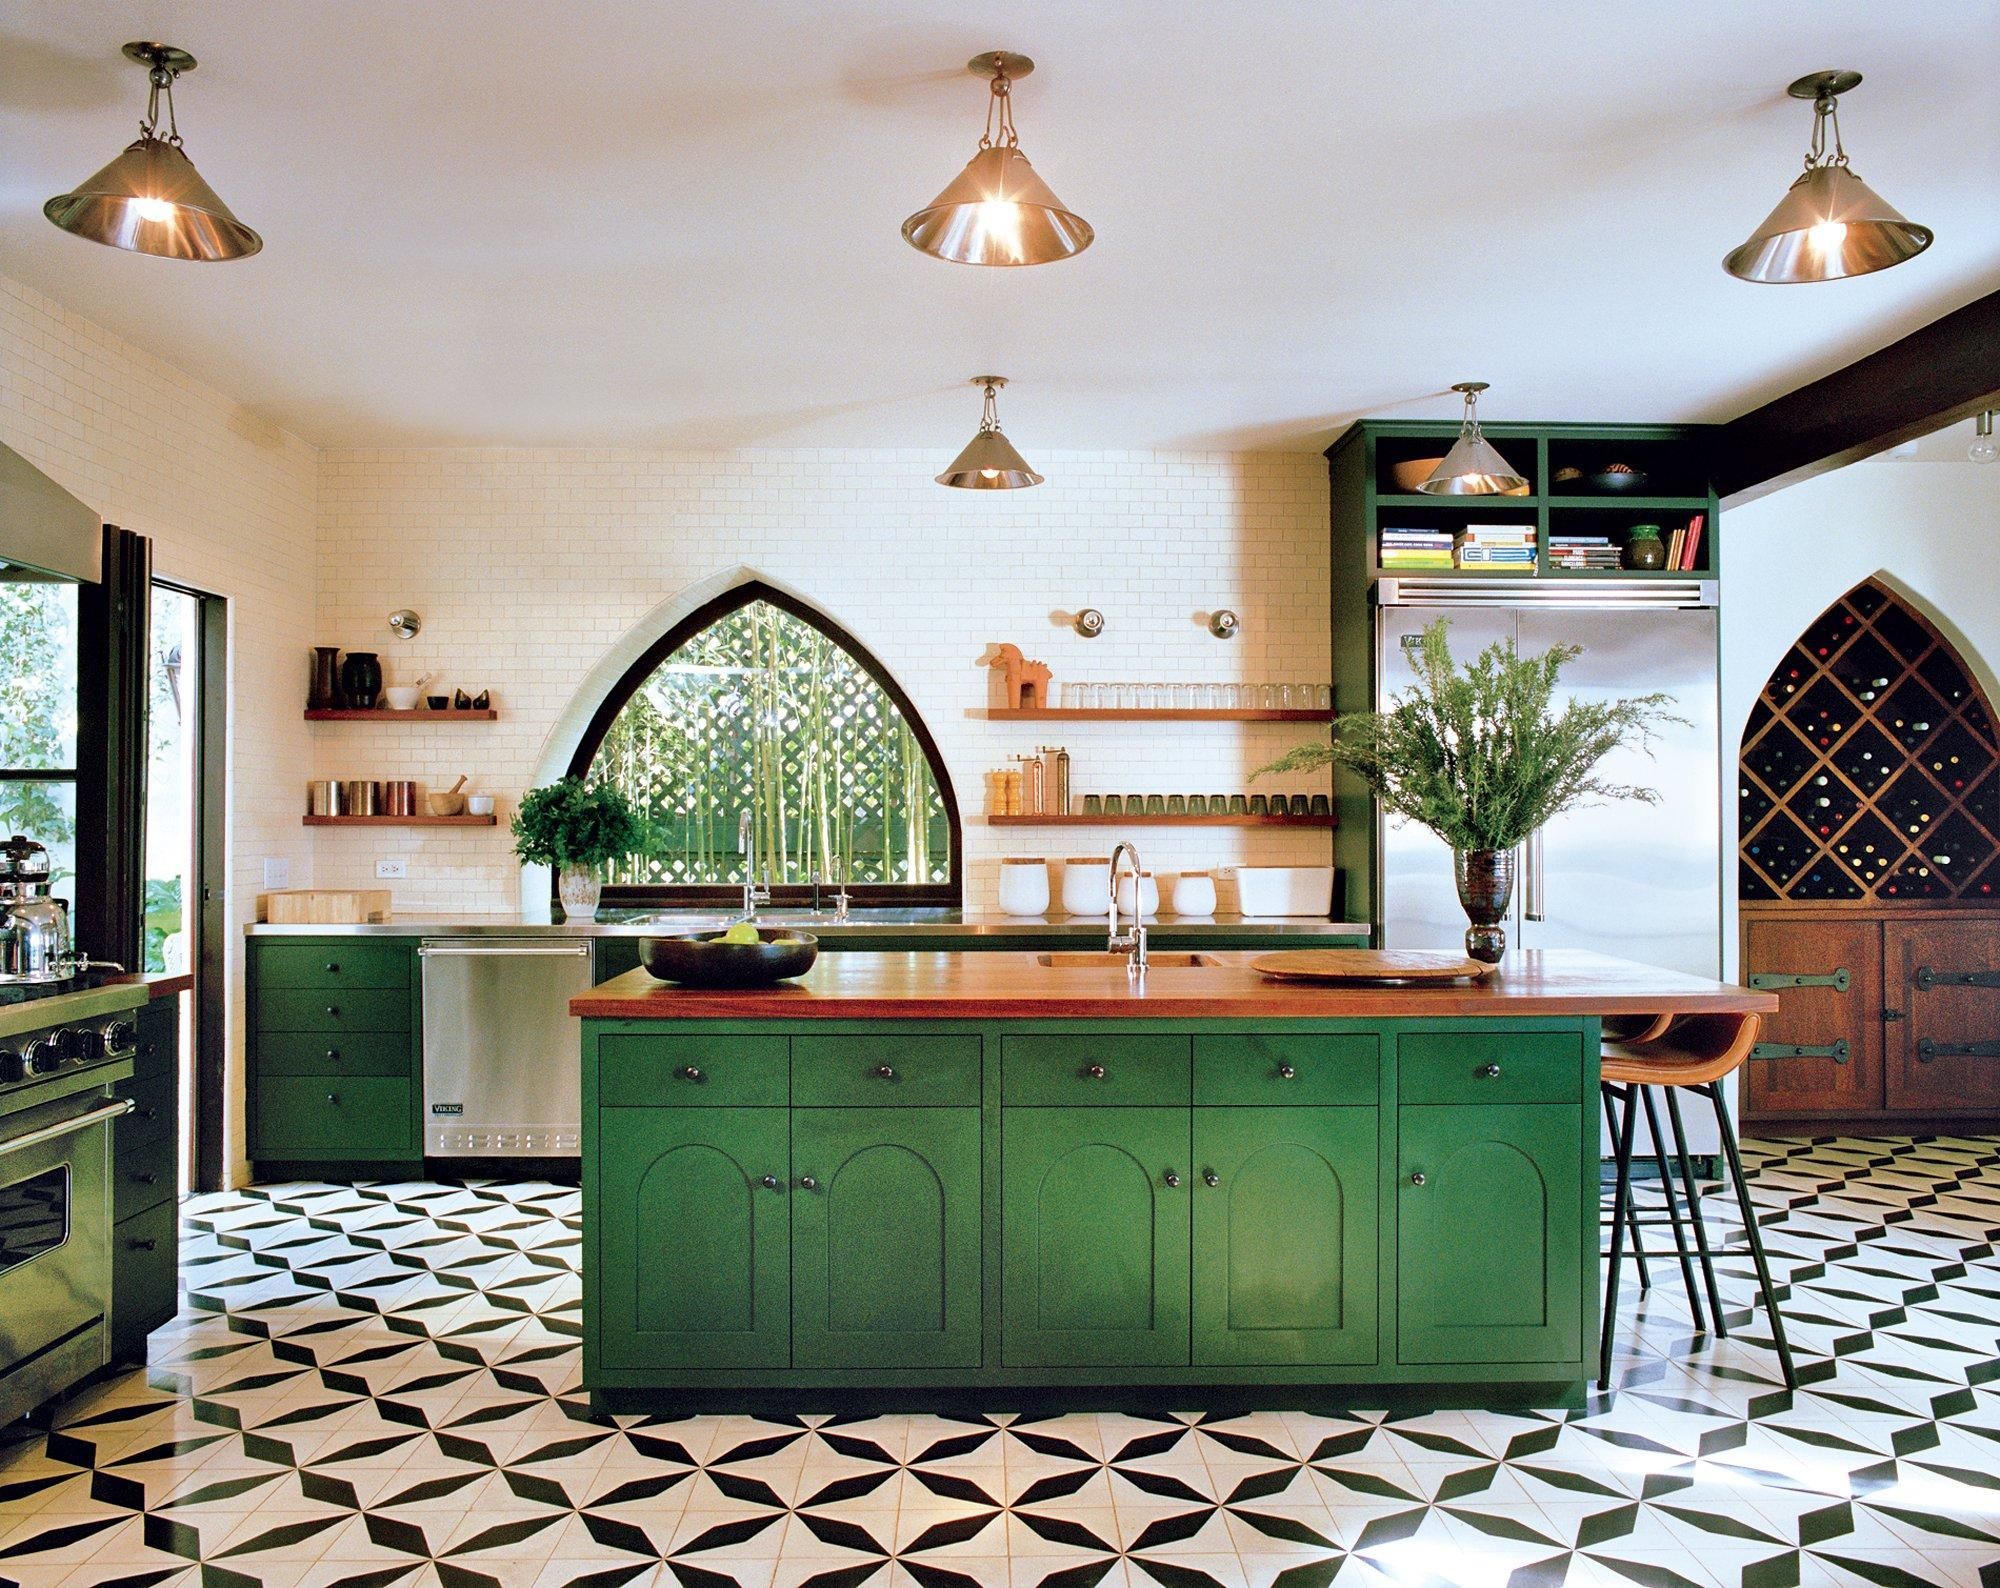 Best Kitchens Photographed in | Beautiful kitchen, Kitchens and House